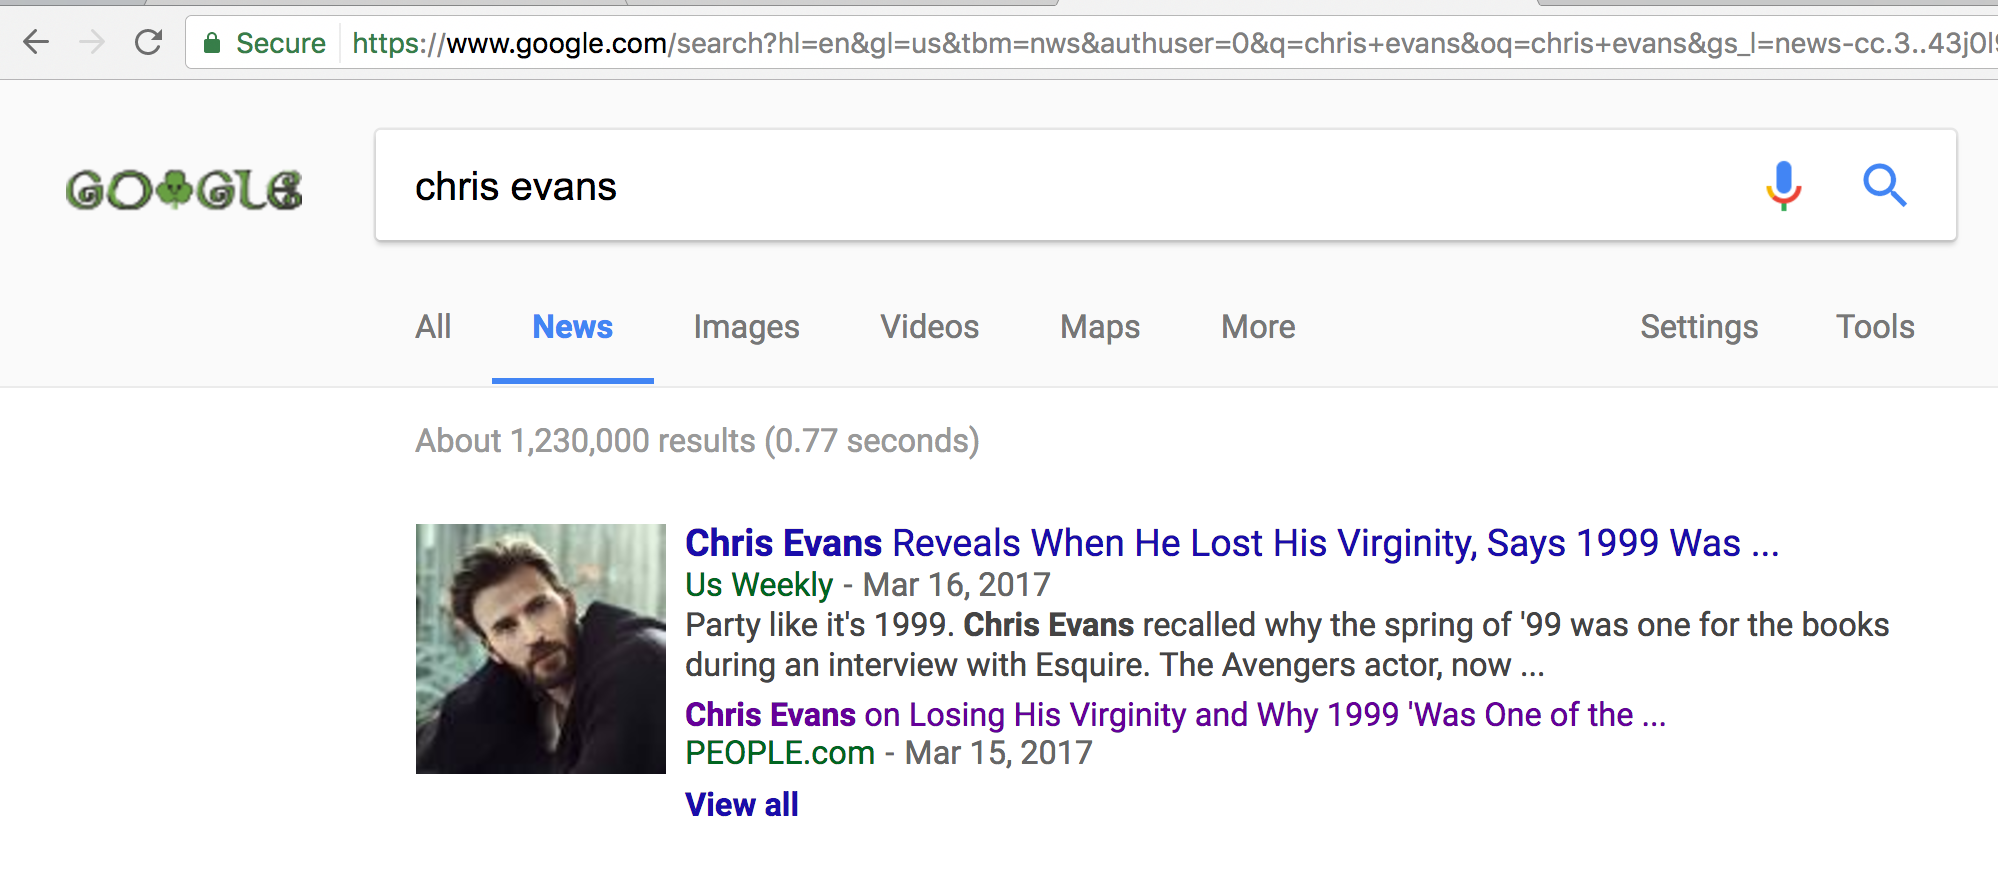 chris evans search results, google news gnews